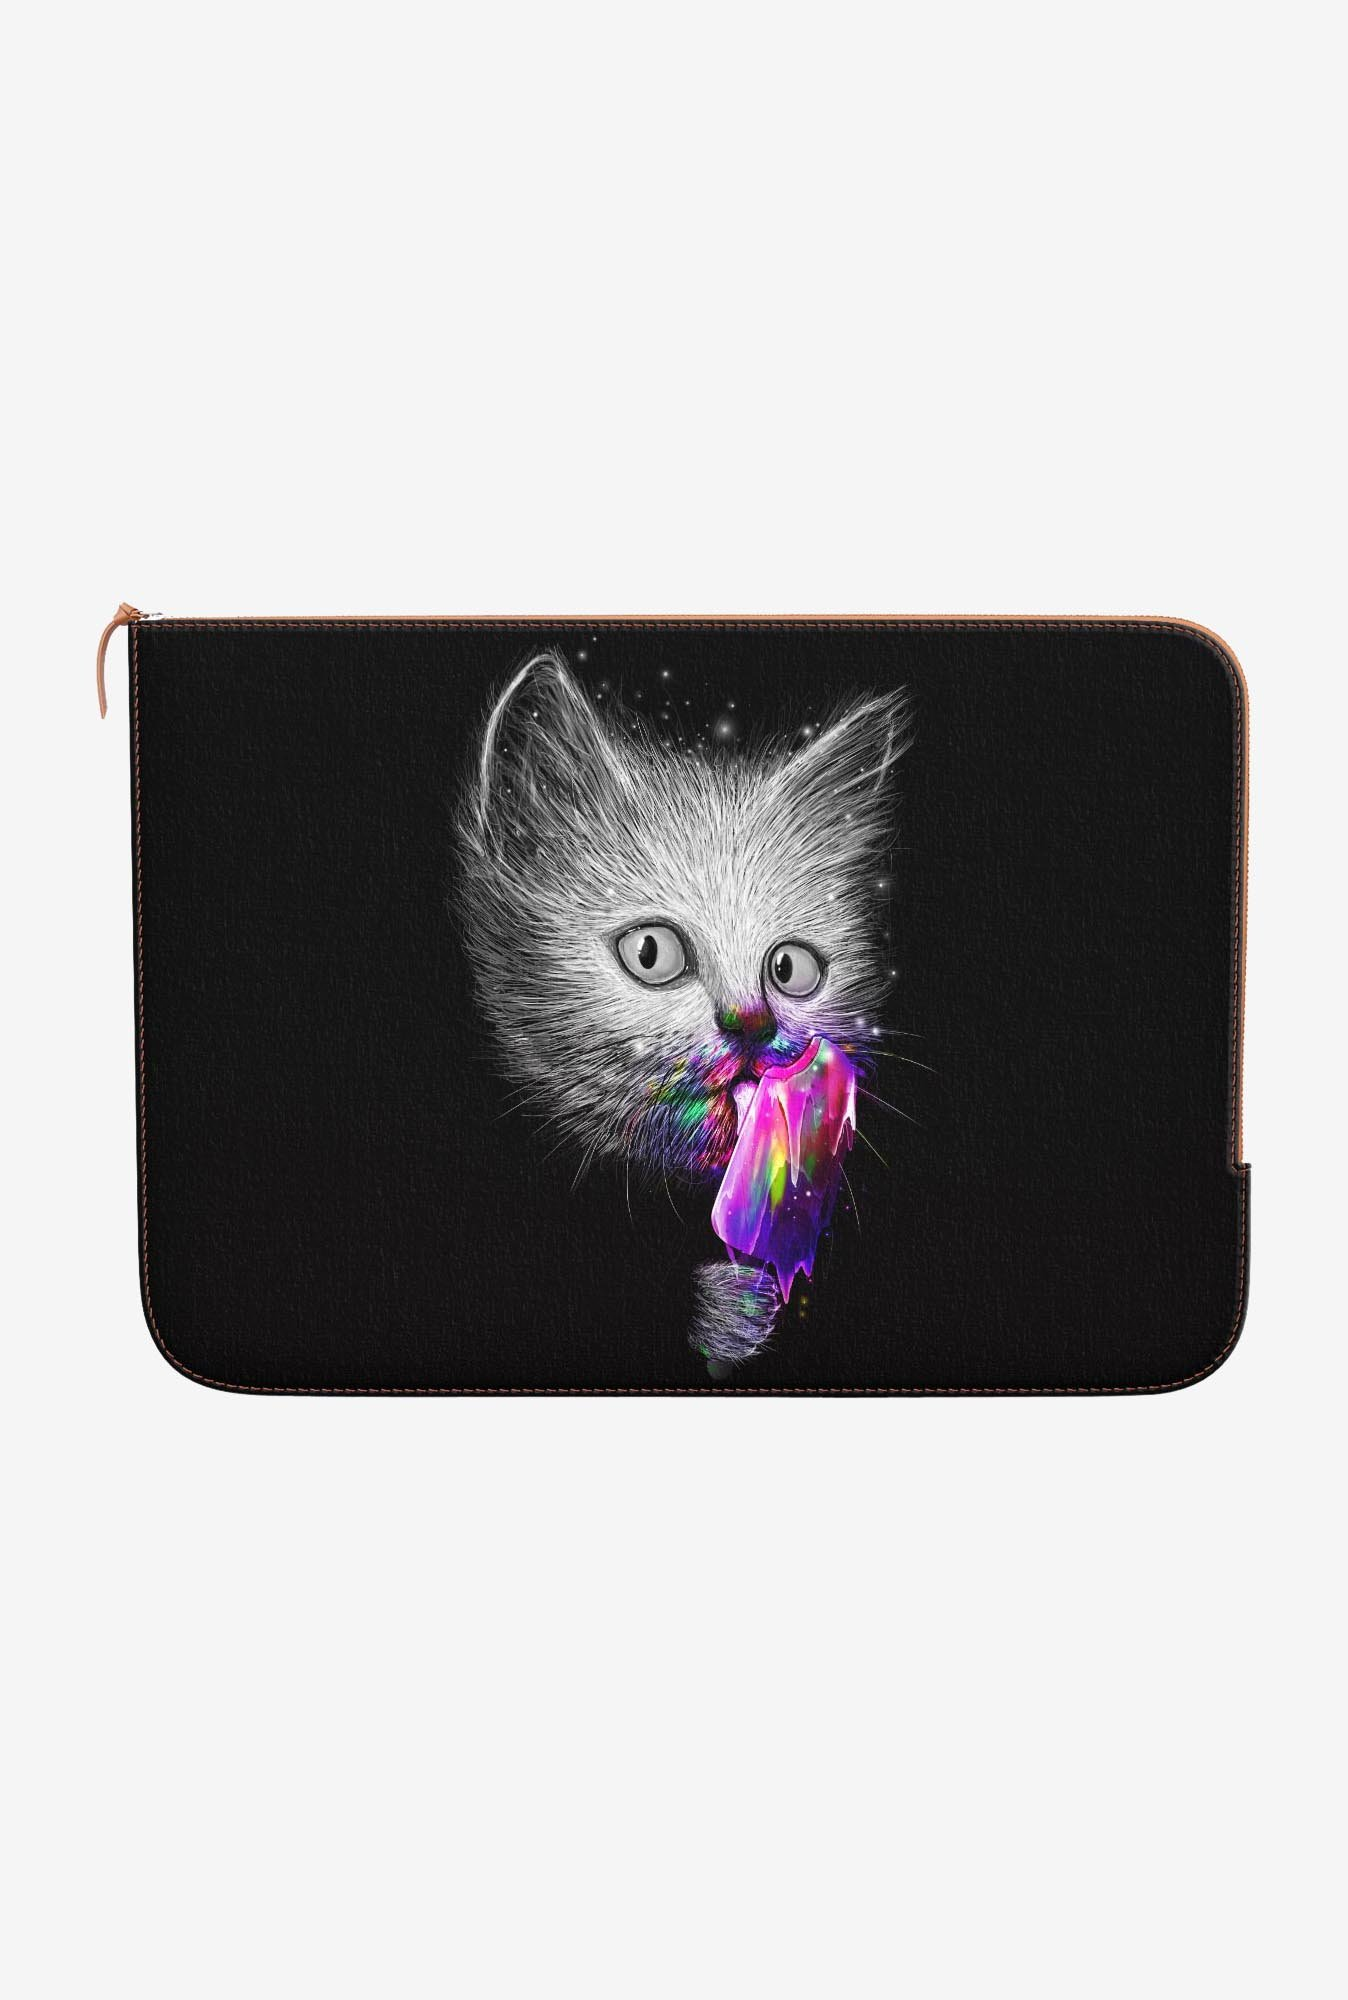 DailyObjects Cat Slurp MacBook Air 11 Zippered Sleeve